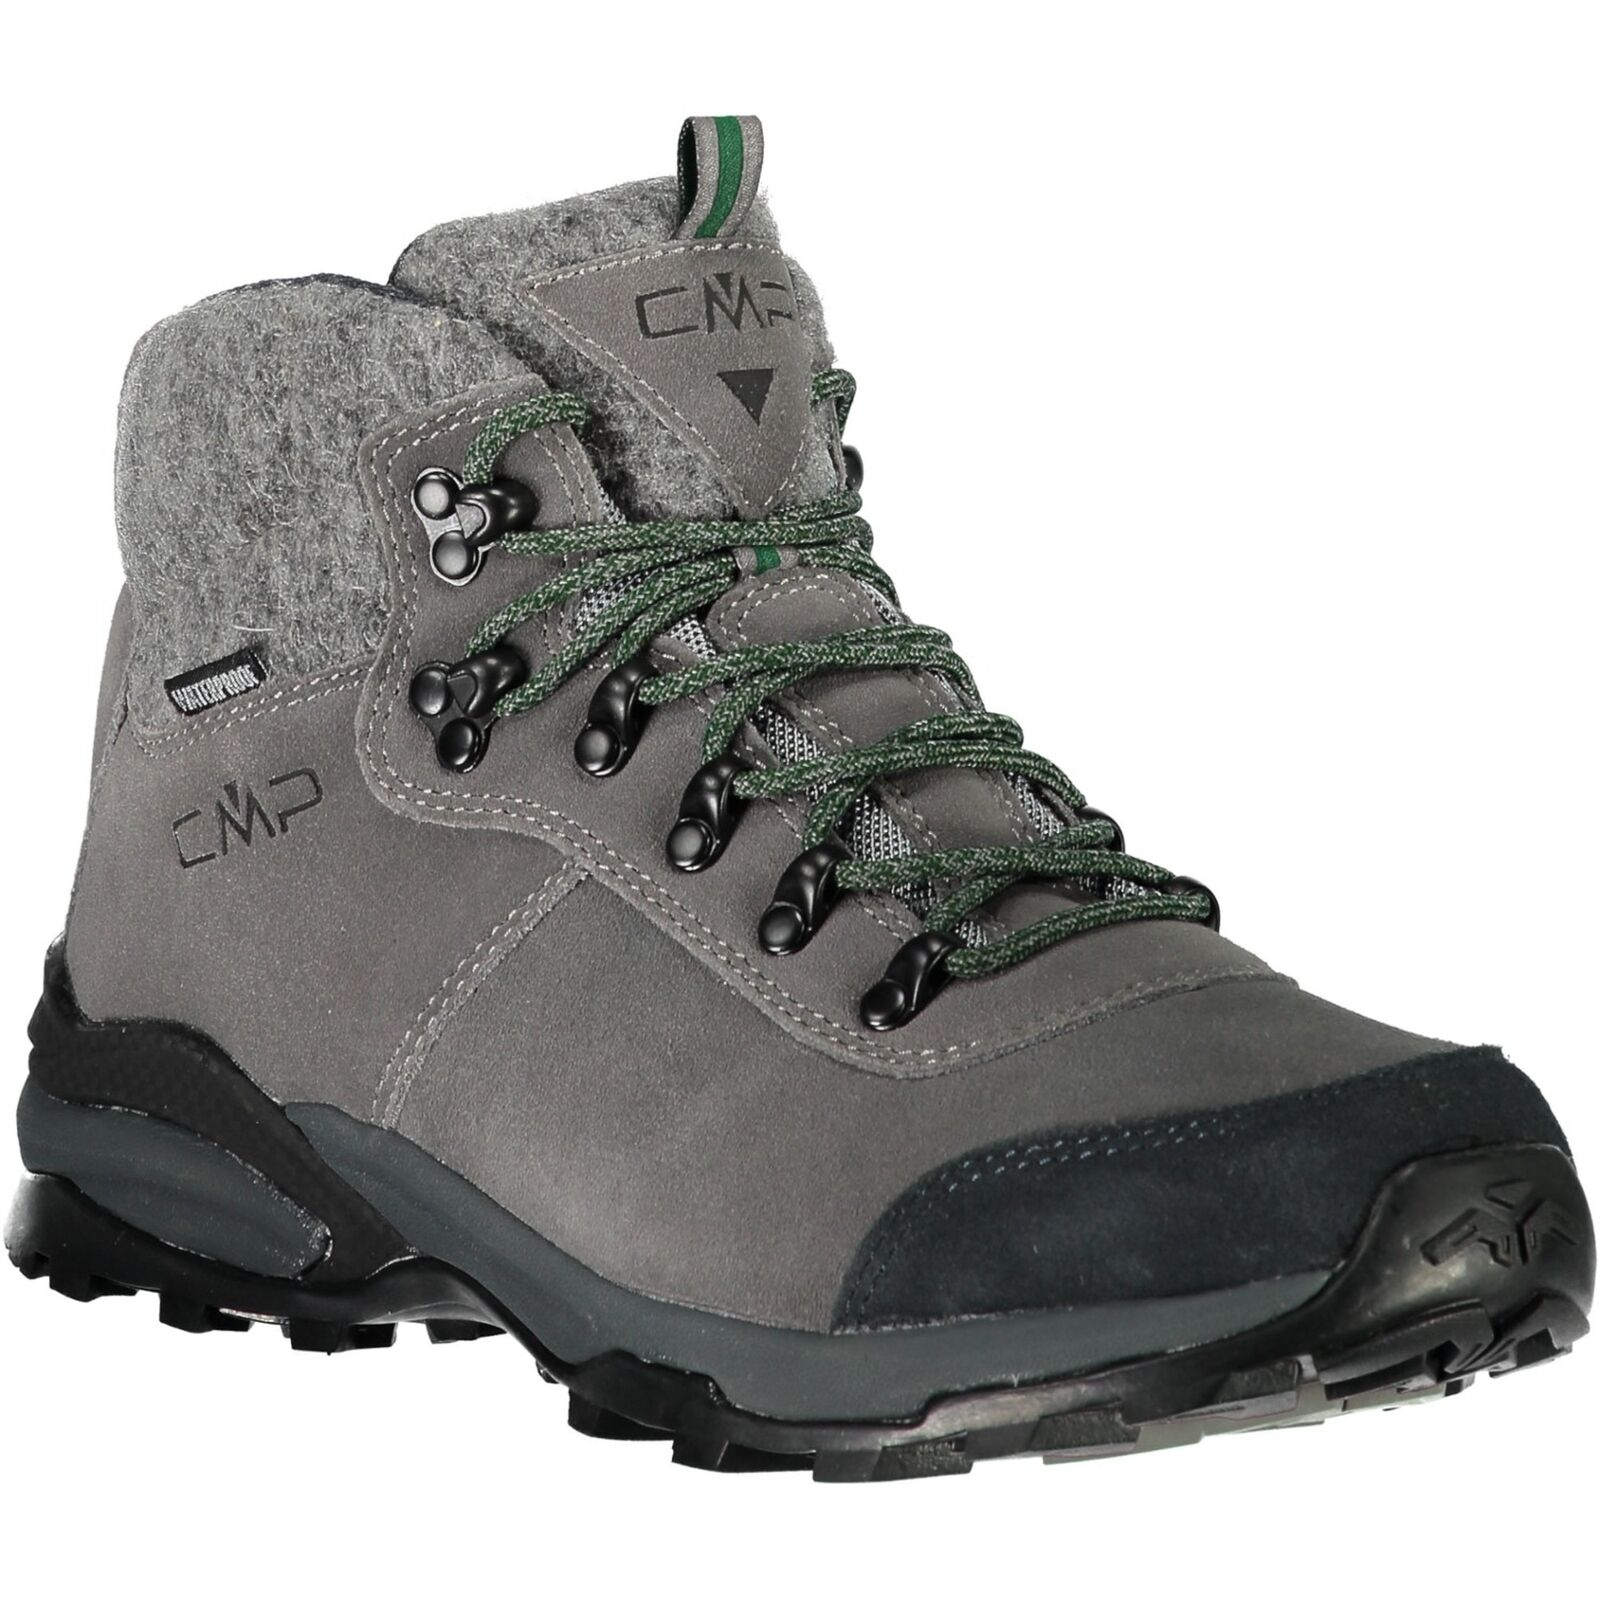 CMP shoes da Trekking  shoes Tempo Libero Turais Trekking shoes Wp 2.0 grey  cost-effective